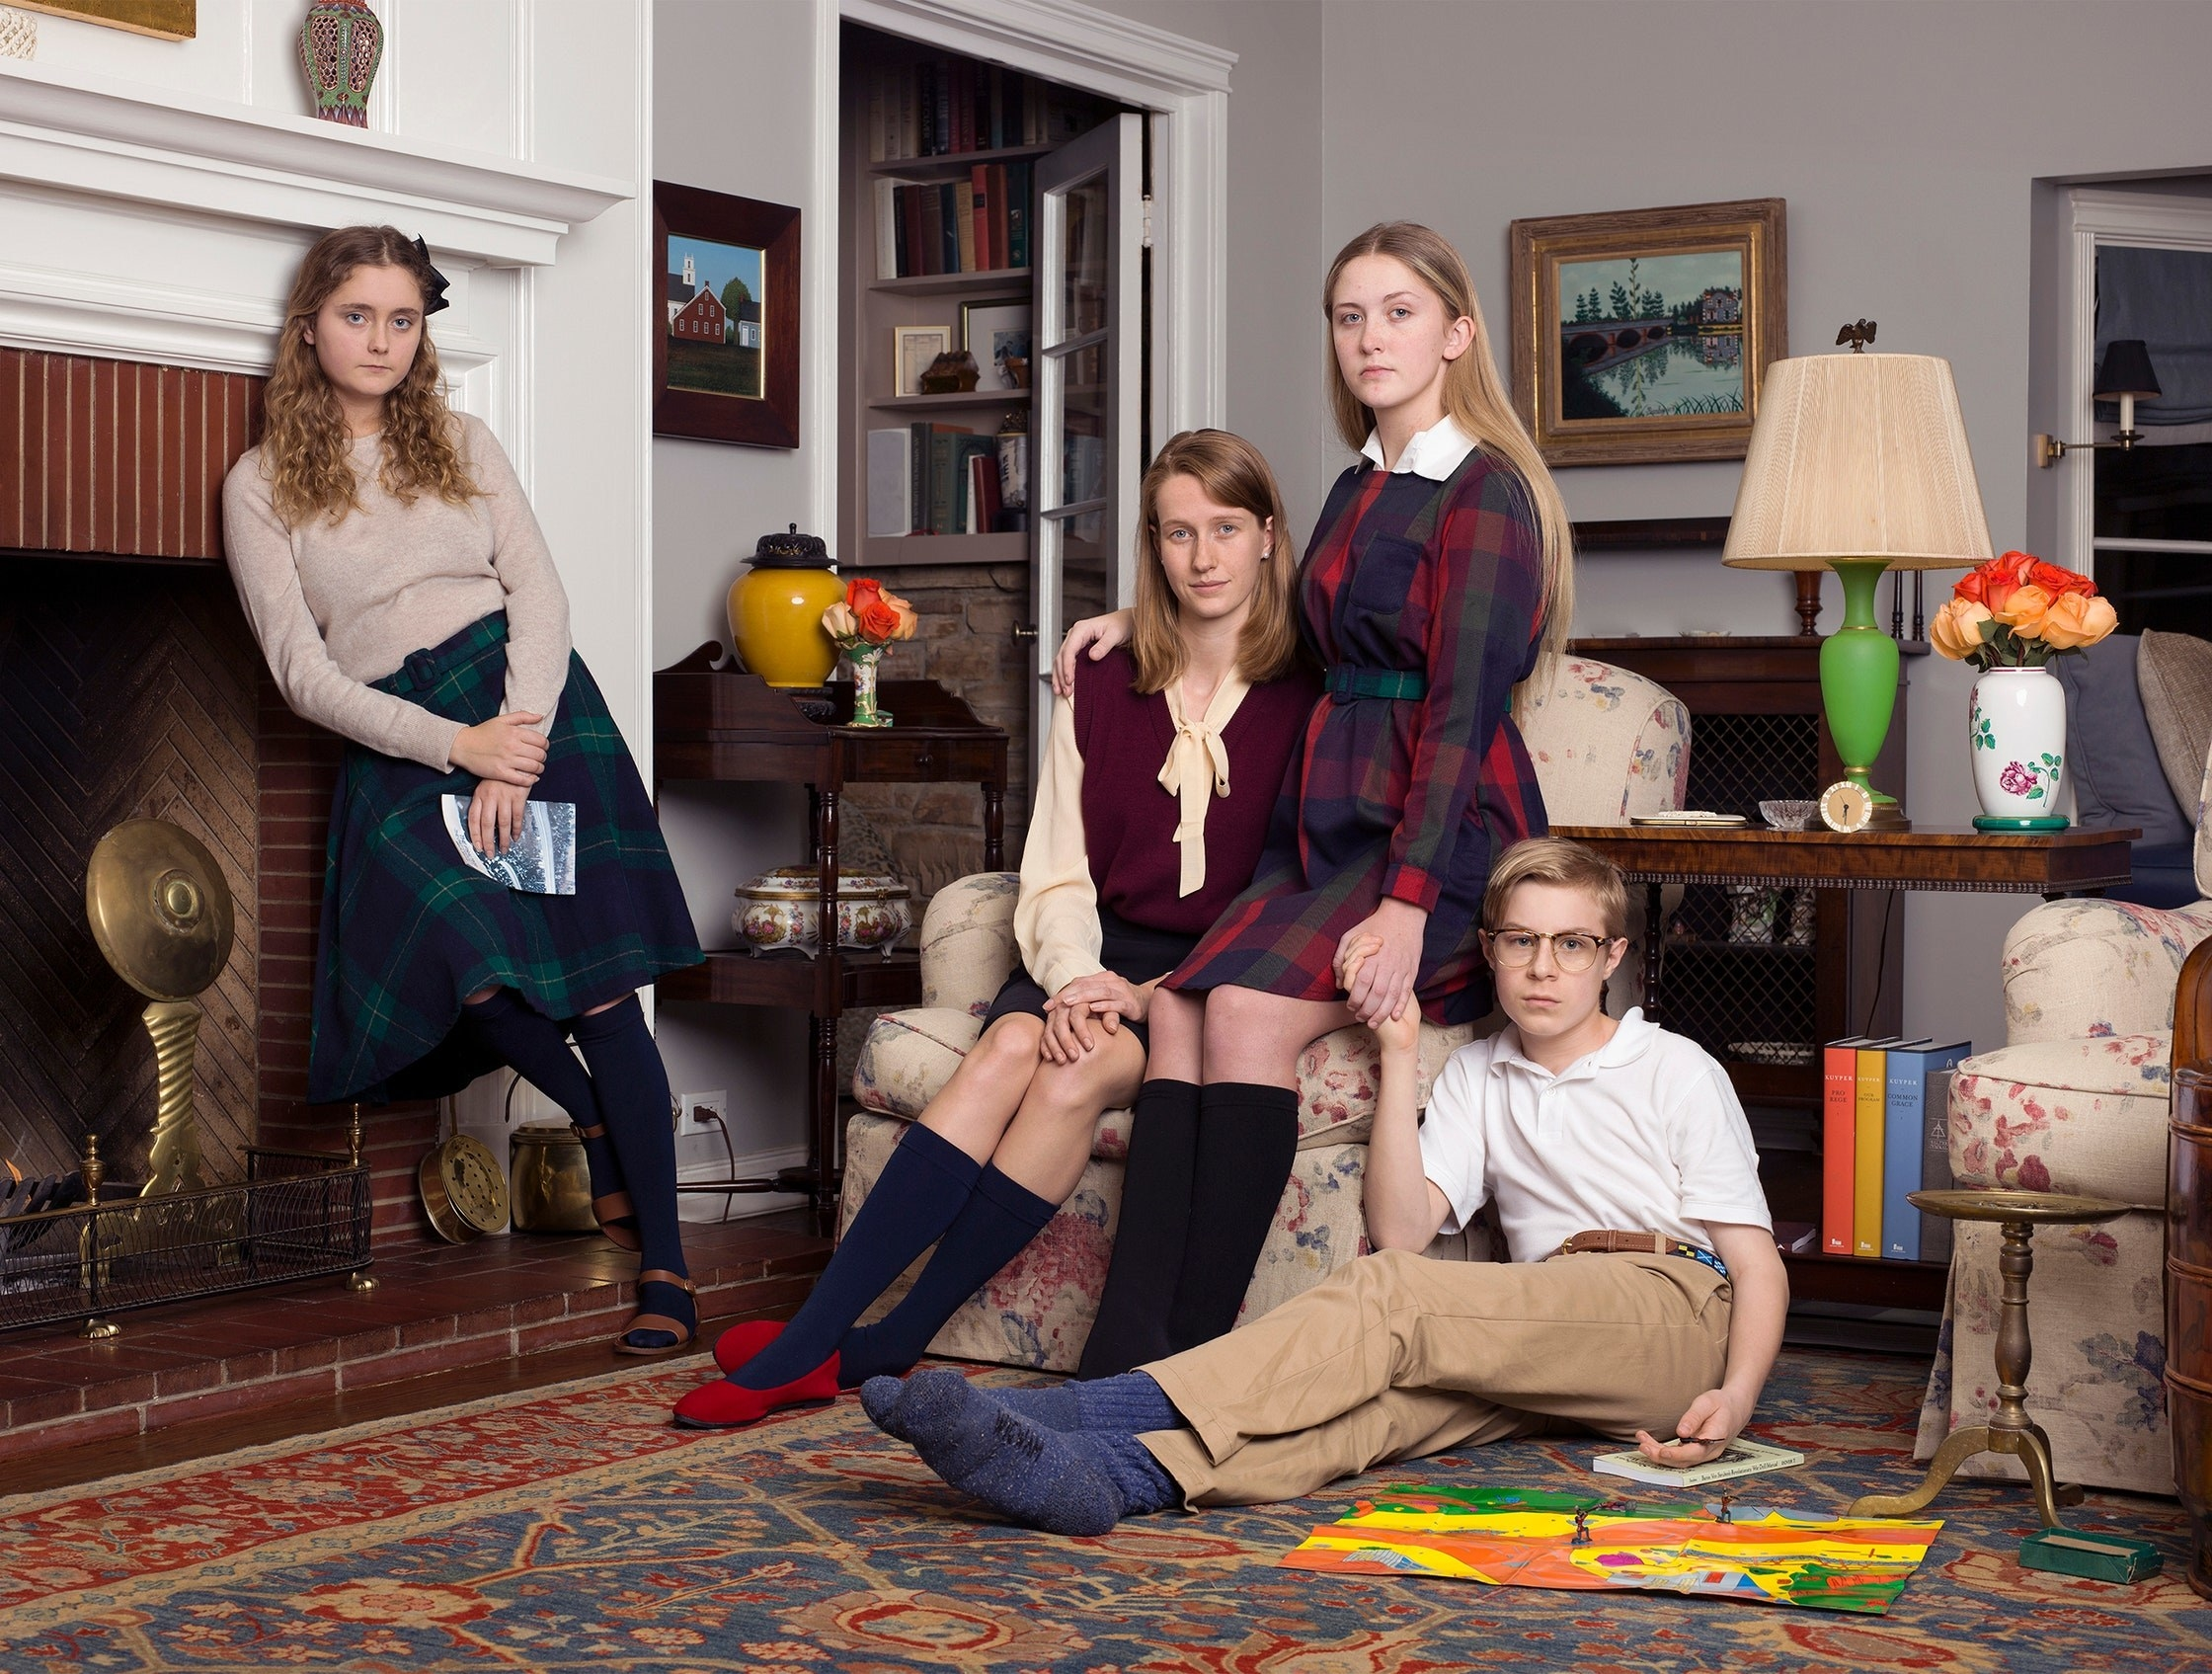 A group of conservatively dressed children sit or stand in room with a rug, fireplace, paintings, and bookshelves